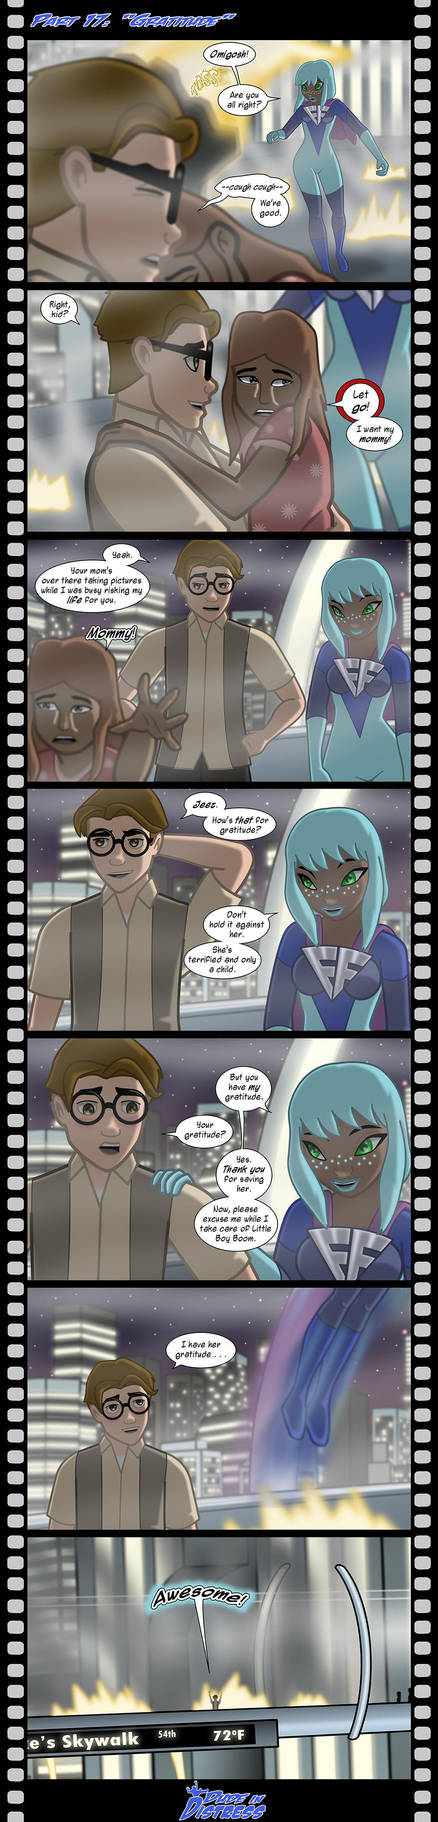 Dude in Distress Preview (Strip 17) by EssayBee